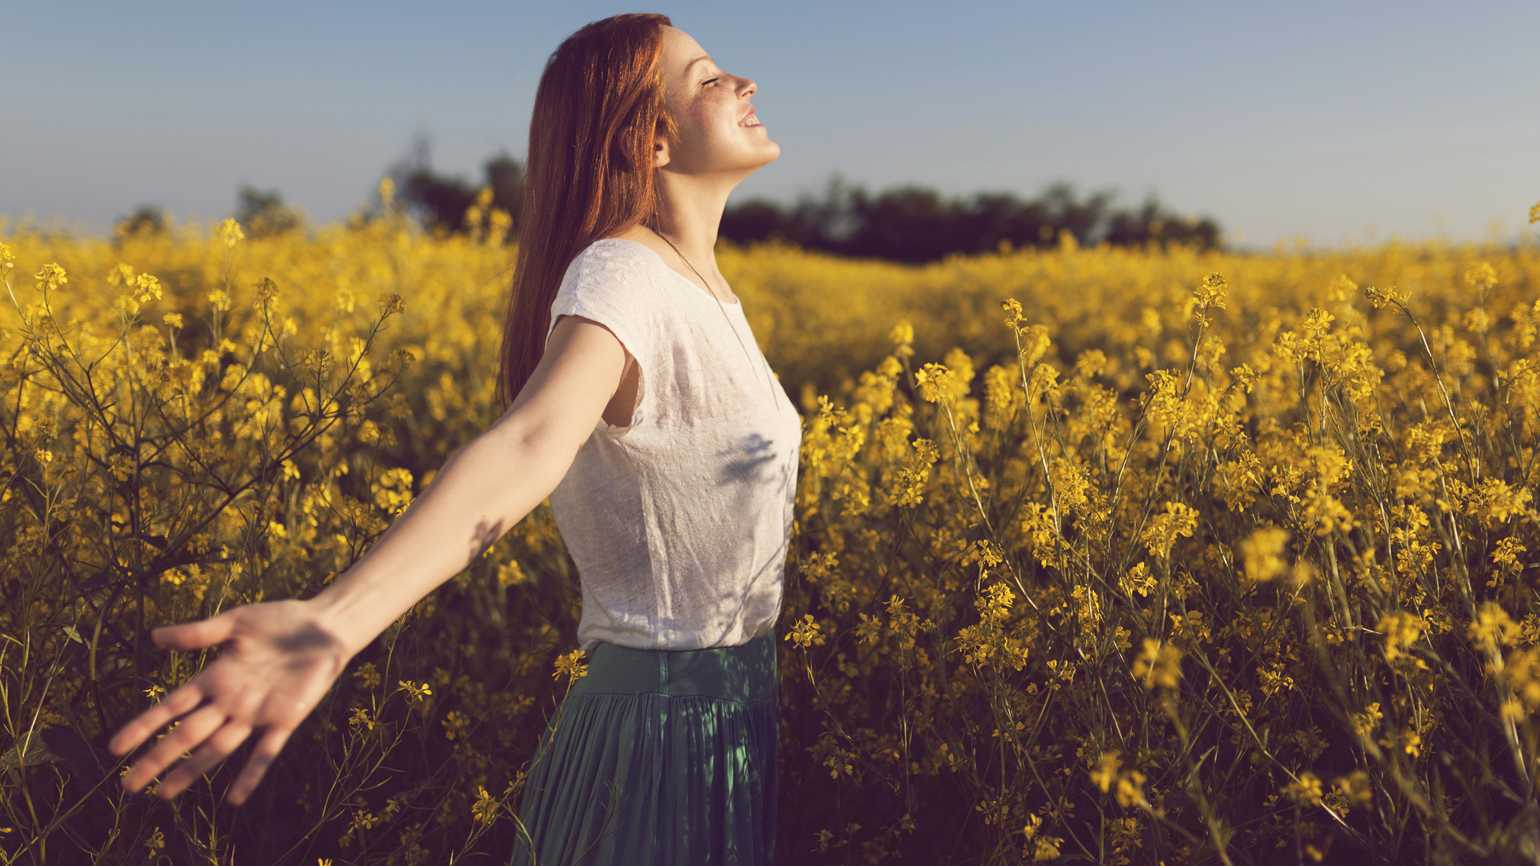 A woman with arms outstretched in a field of yellow flowers.